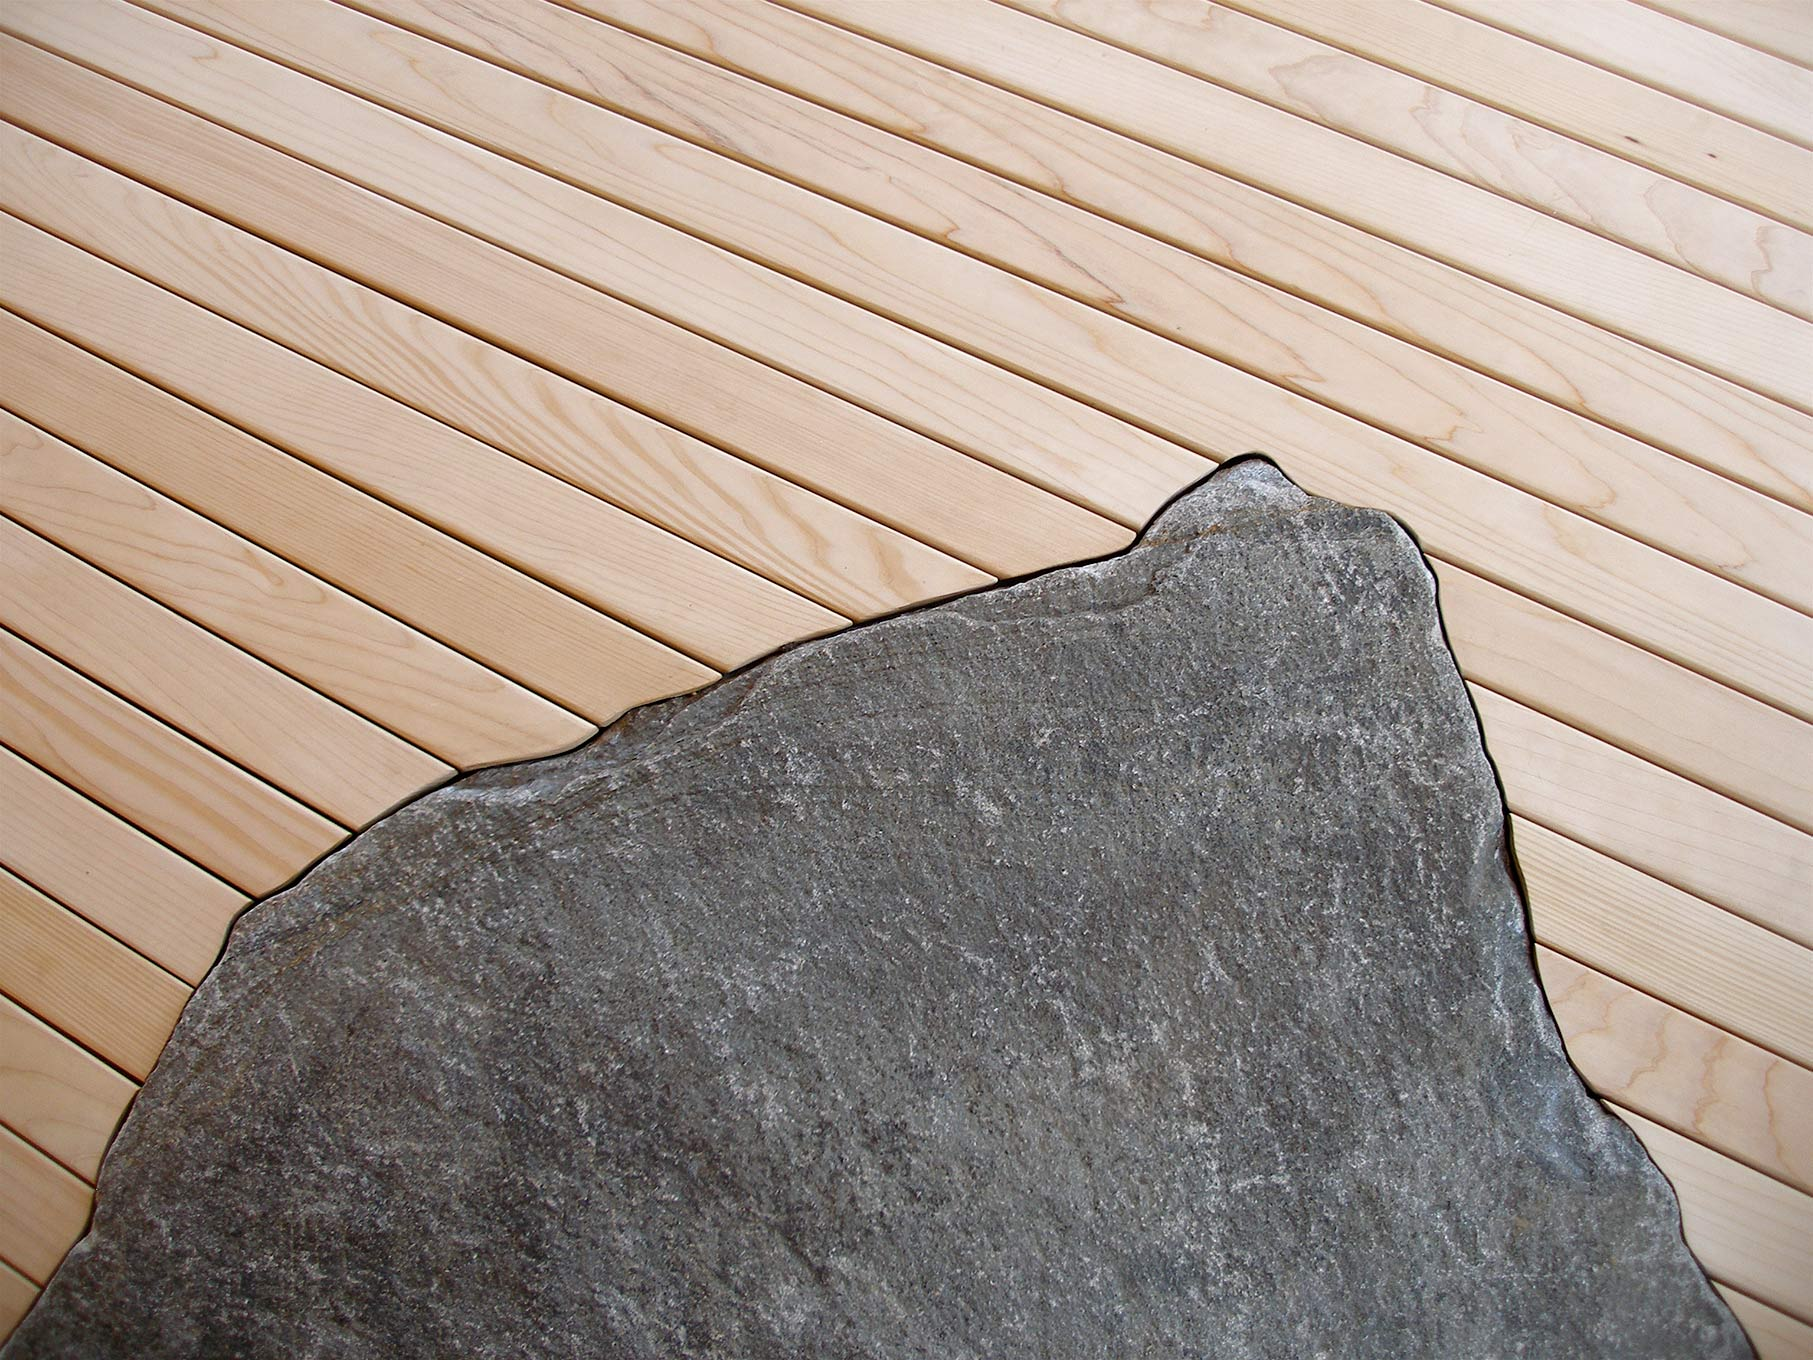 West Wind floor detail; stone meets wood